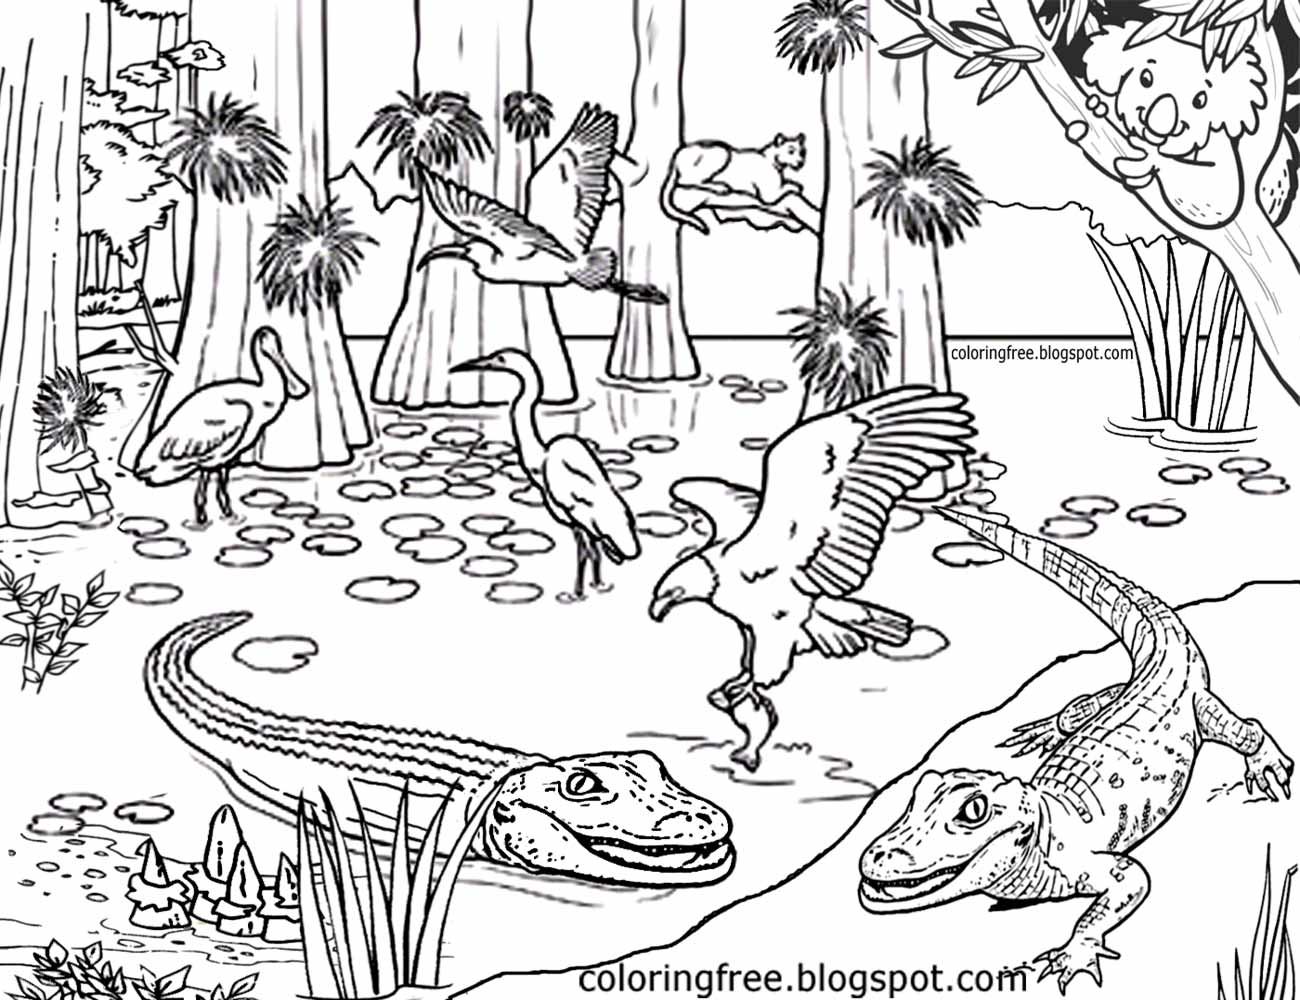 free coloring printable pictures to color kids drawing ideas australian colouring for coloring pages Australia Coloring Page